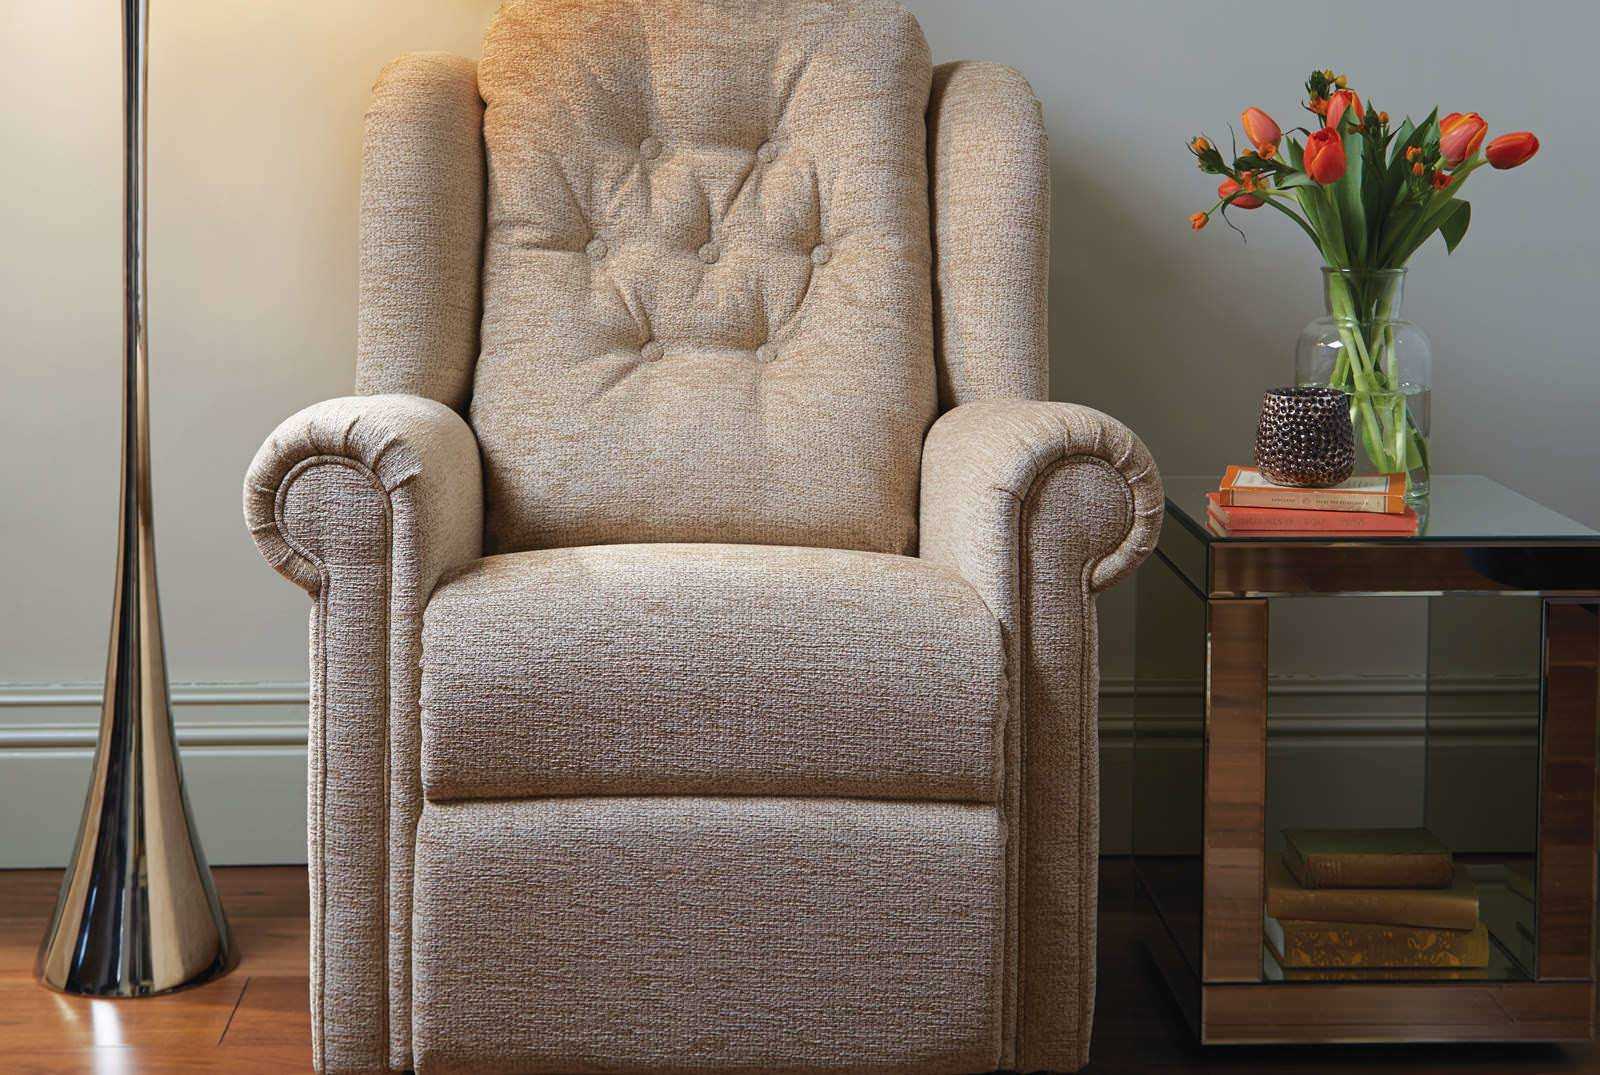 Hampton Relax Comfort Chair in Boucle Jute